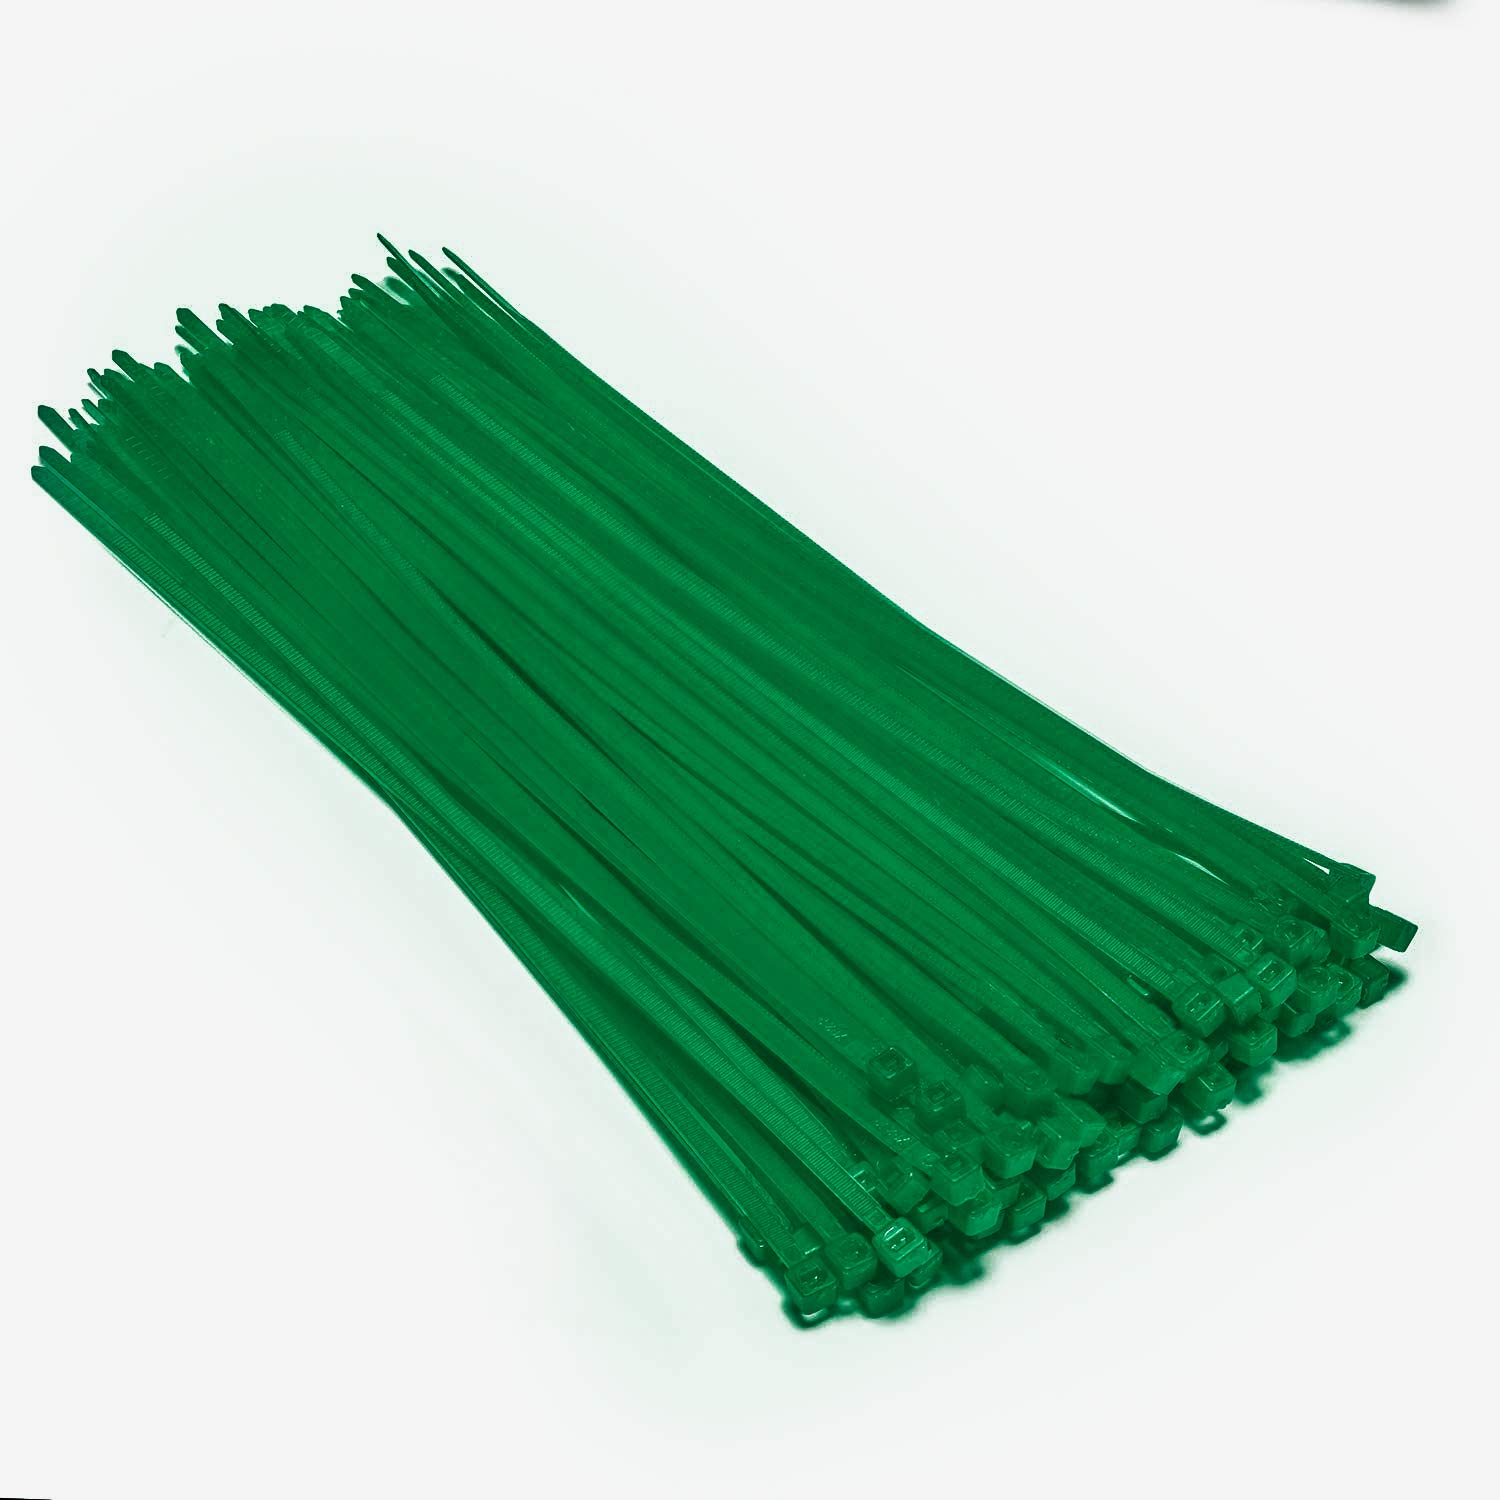 Multi-Purpose Nylon Zip Ties - (100 Piece) Self Locking Cable Ties with Ultra Strong Plastic 8', (Multiple Colors to Choose from - Green) (Multiple Colors to Choose from - Green) OUPENG